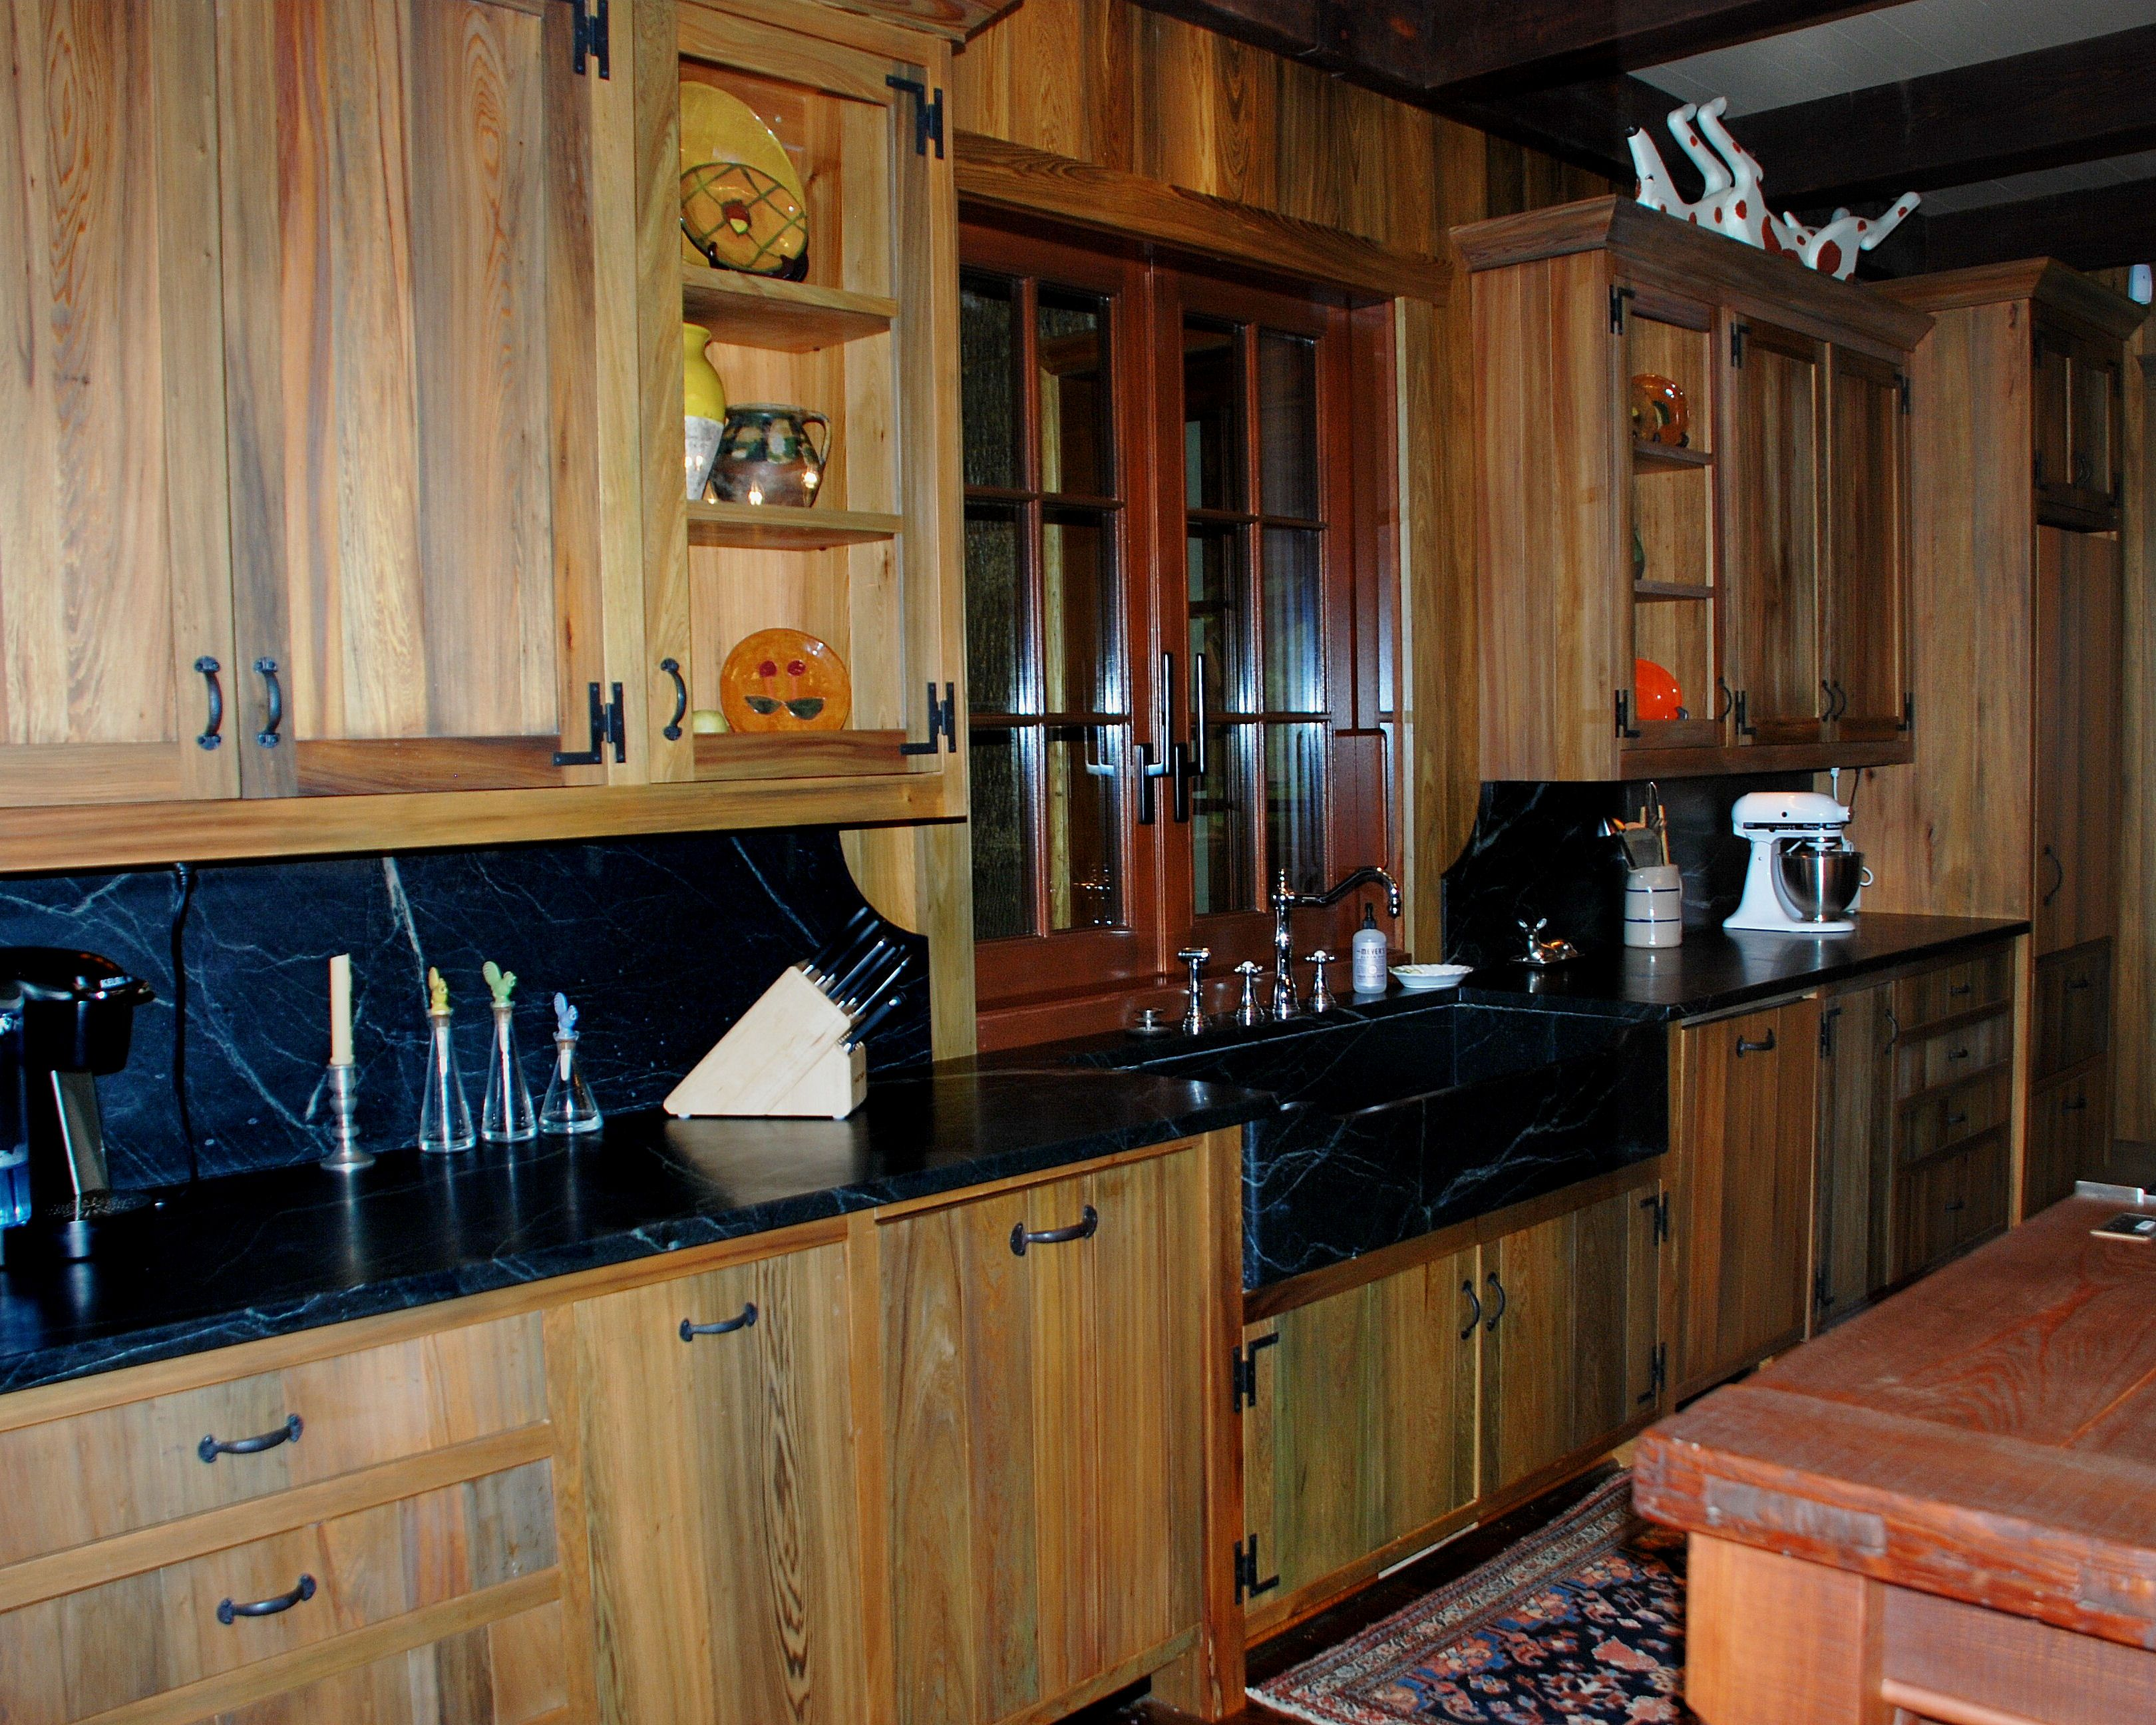 River Recovered Cypress Kitchen Cabinets Uppers Bases In Green Blue Brown Grey Tones By Vintage Lumber Sales Upper Kitchen Cabinets Kitchen Cabinets Kitchen